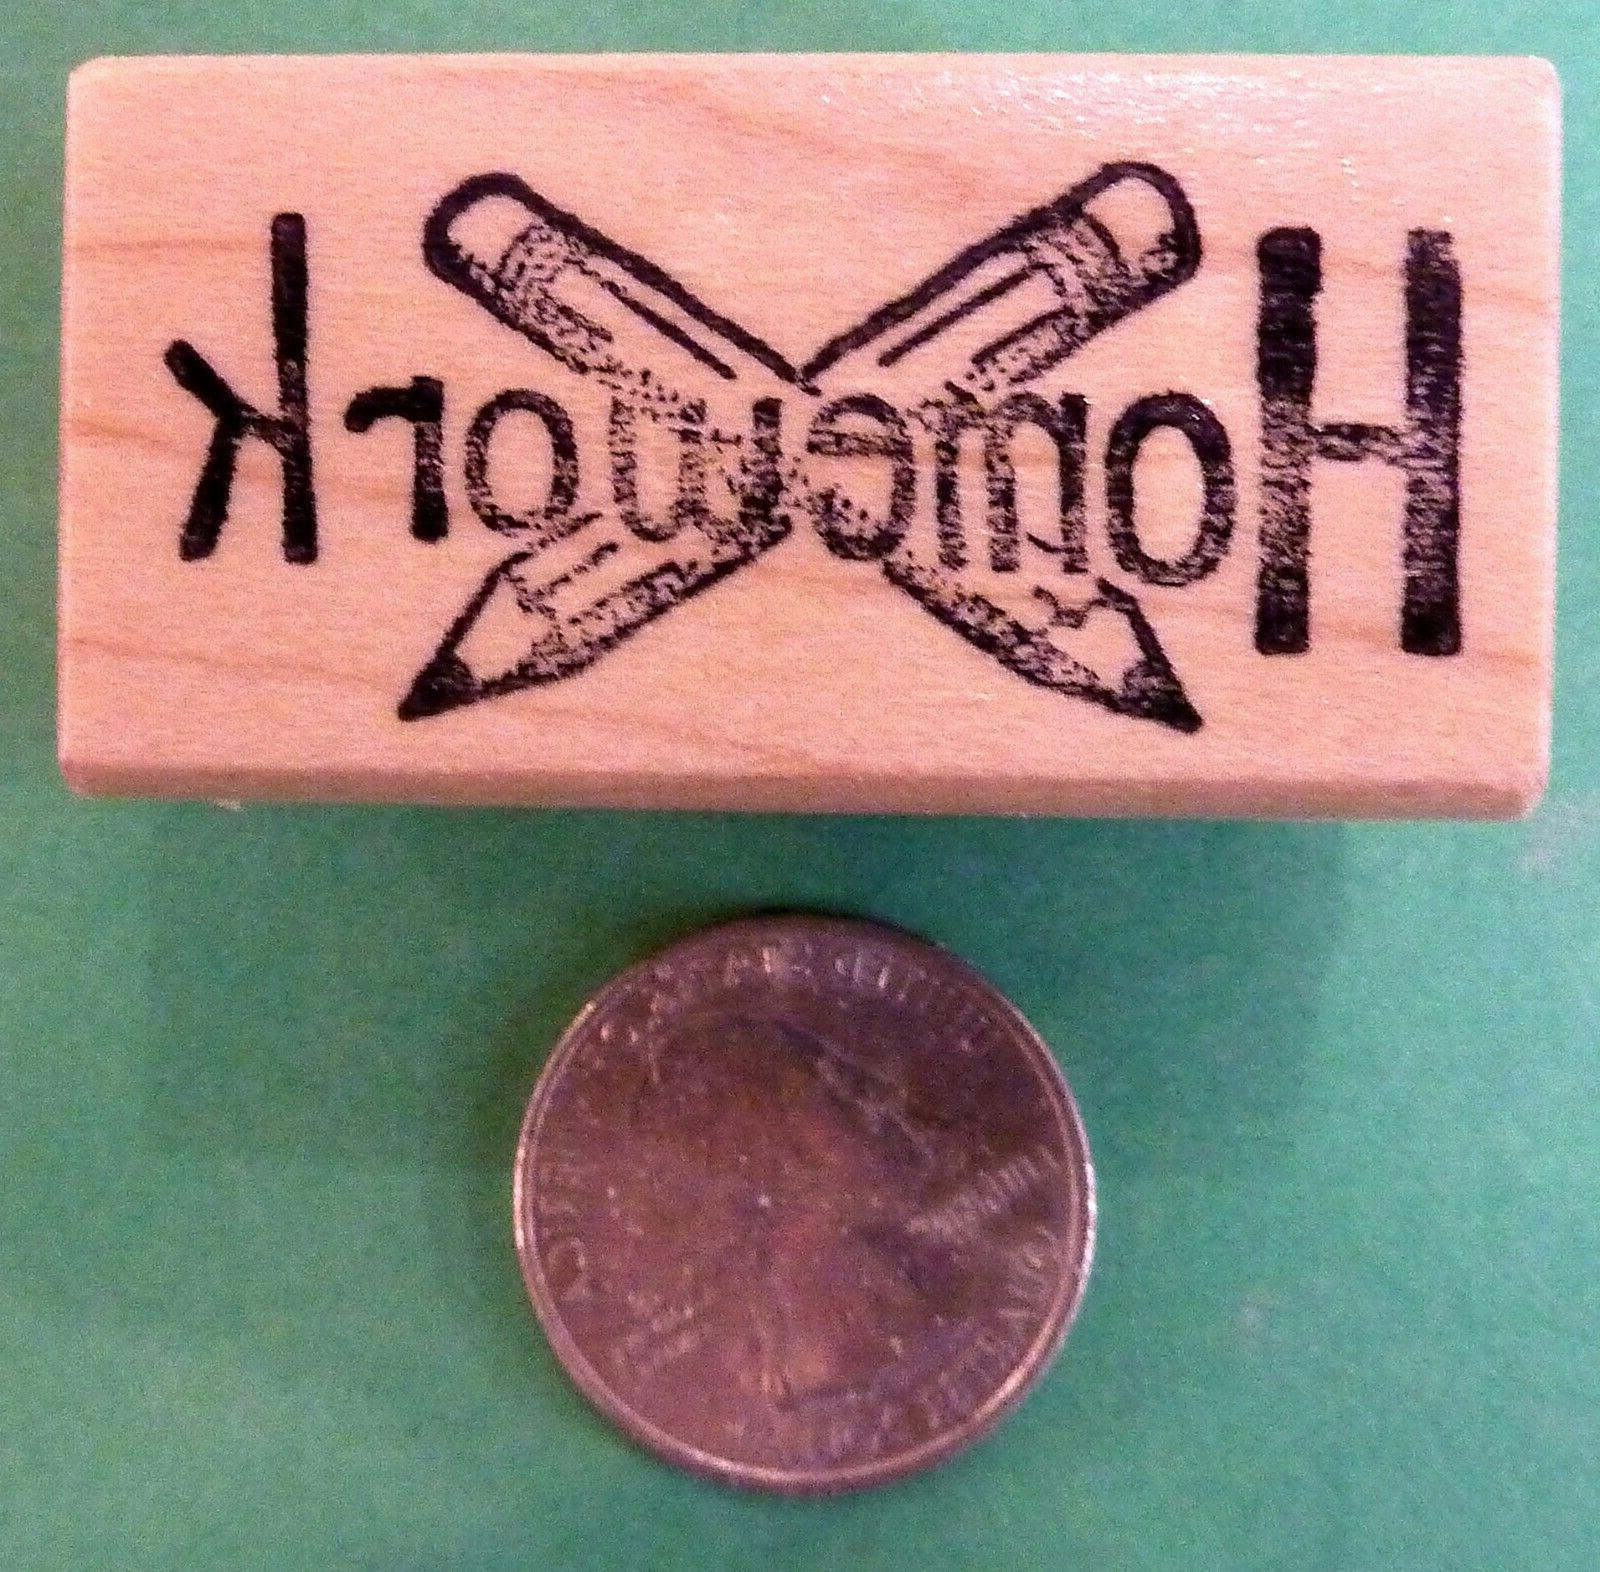 Teachers' Homework Reminder, wood mounted rubber stamp